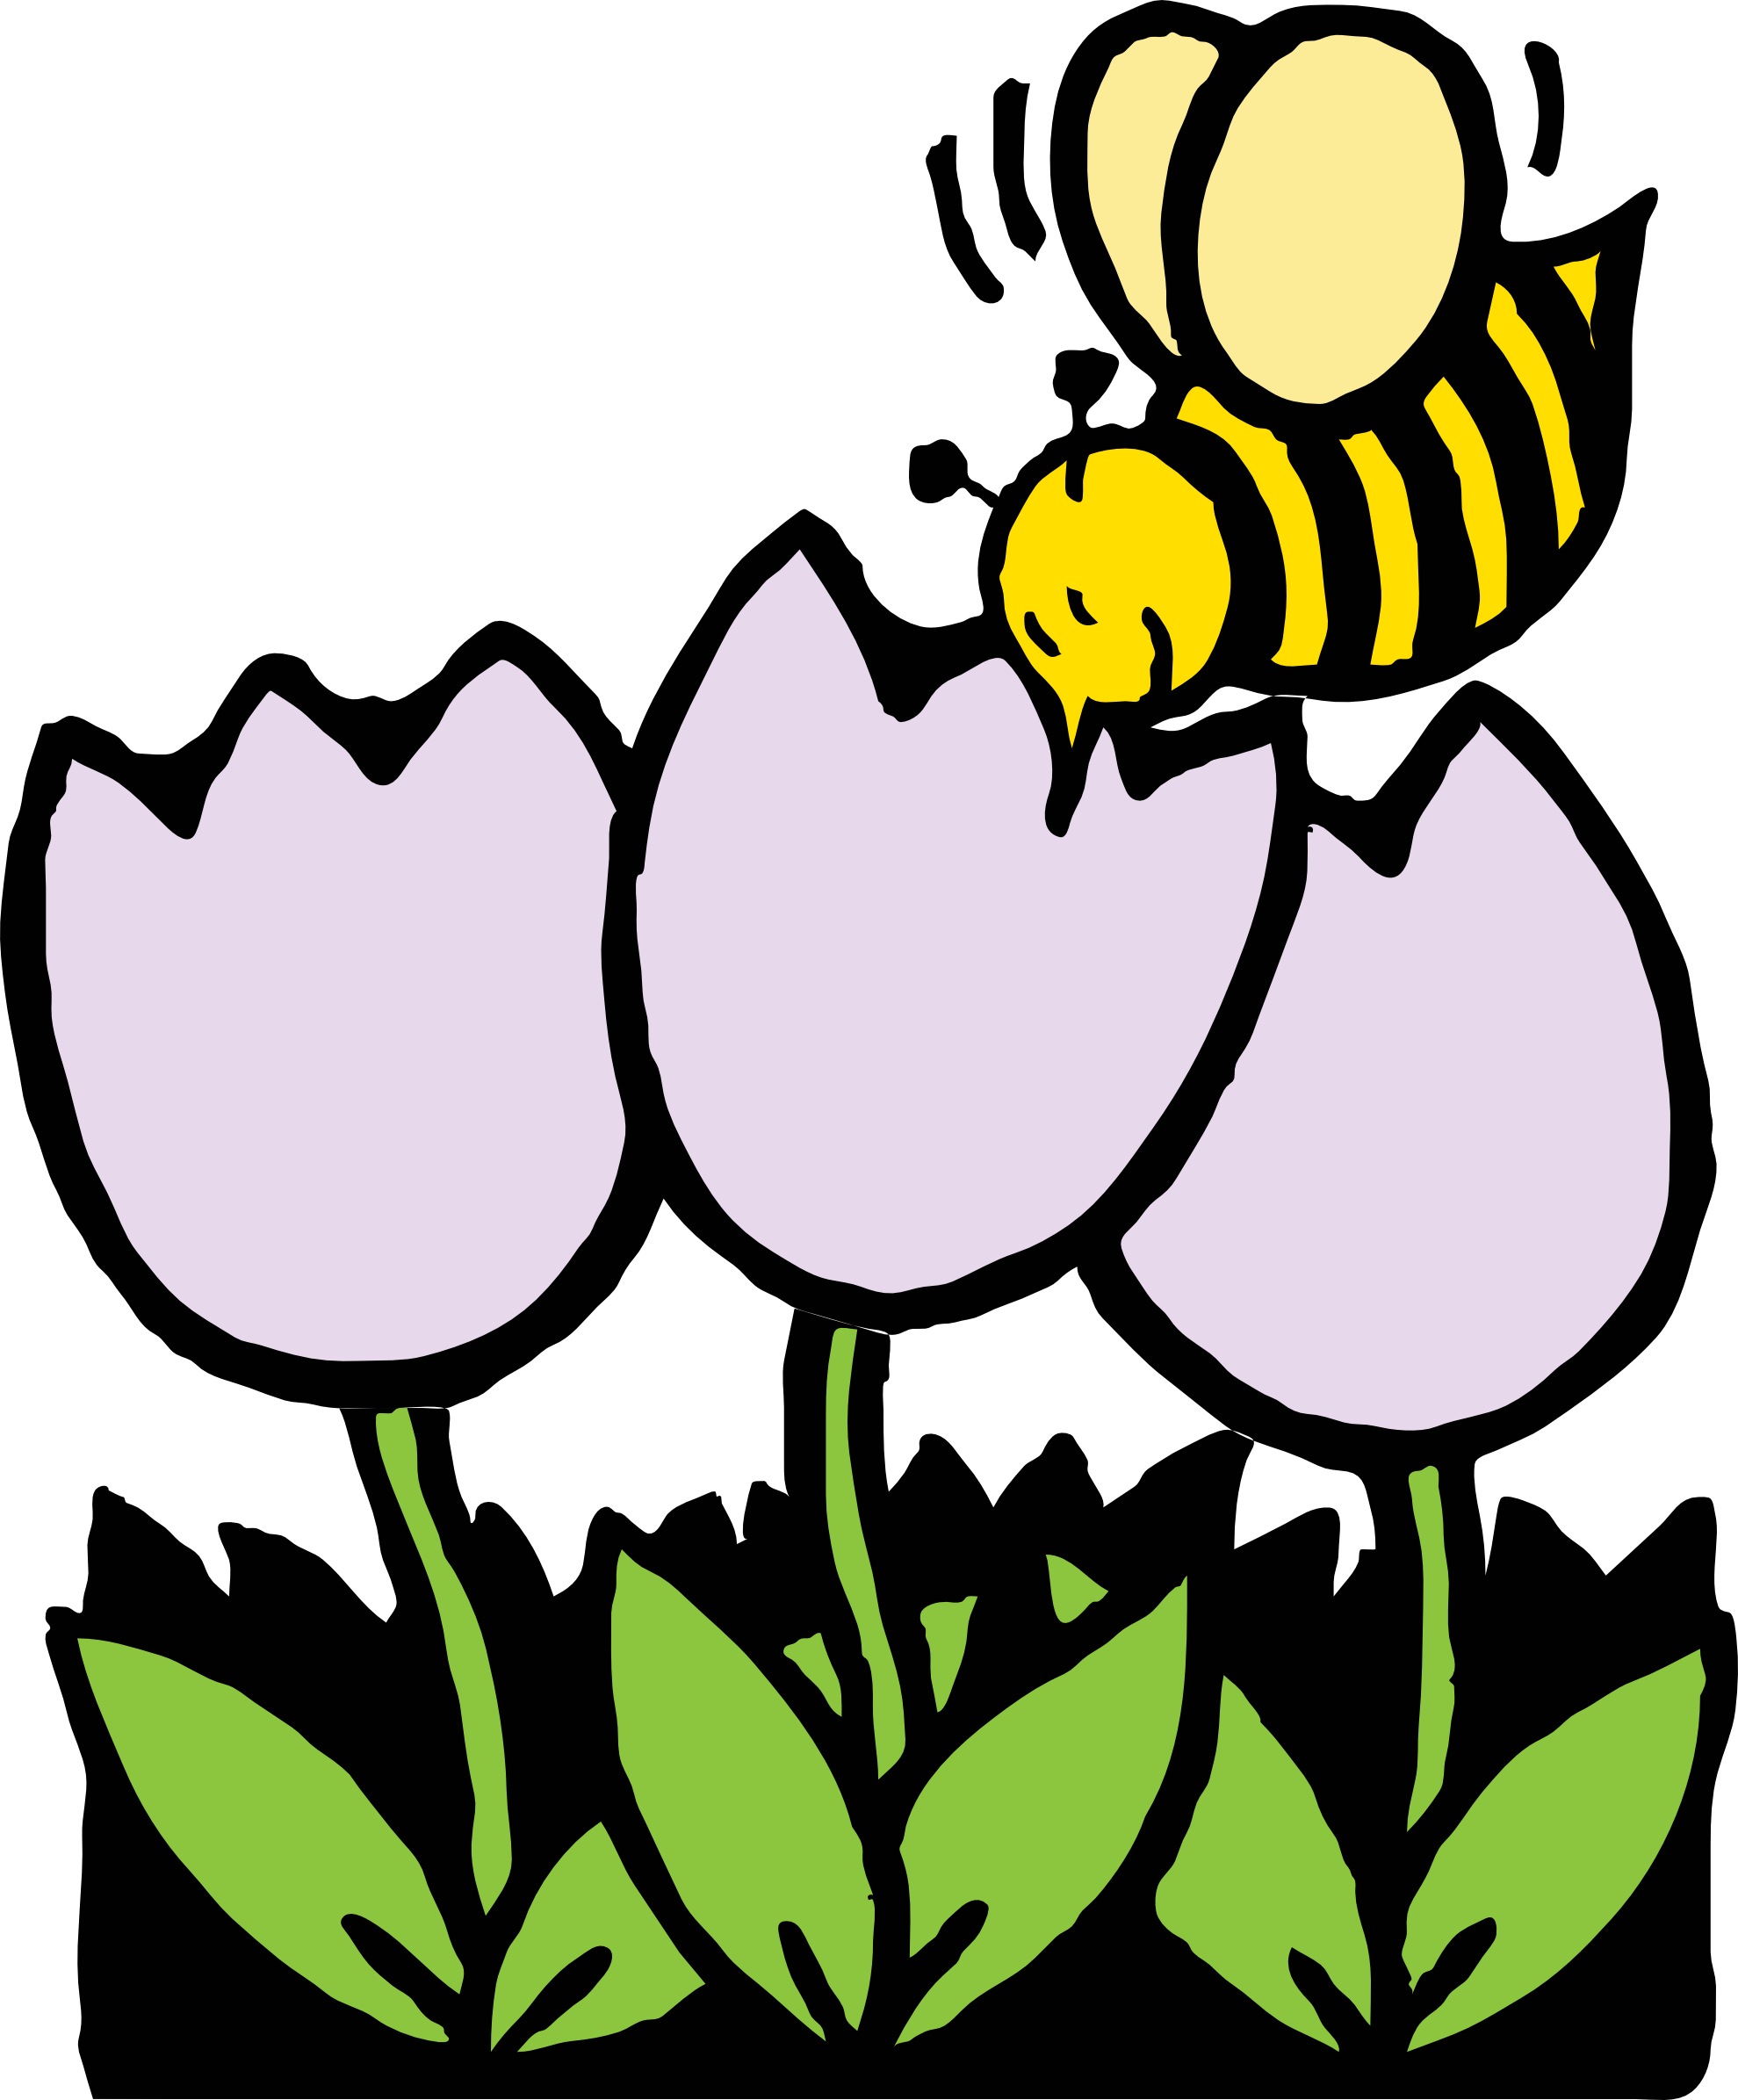 Bumble bee pollination clipart.